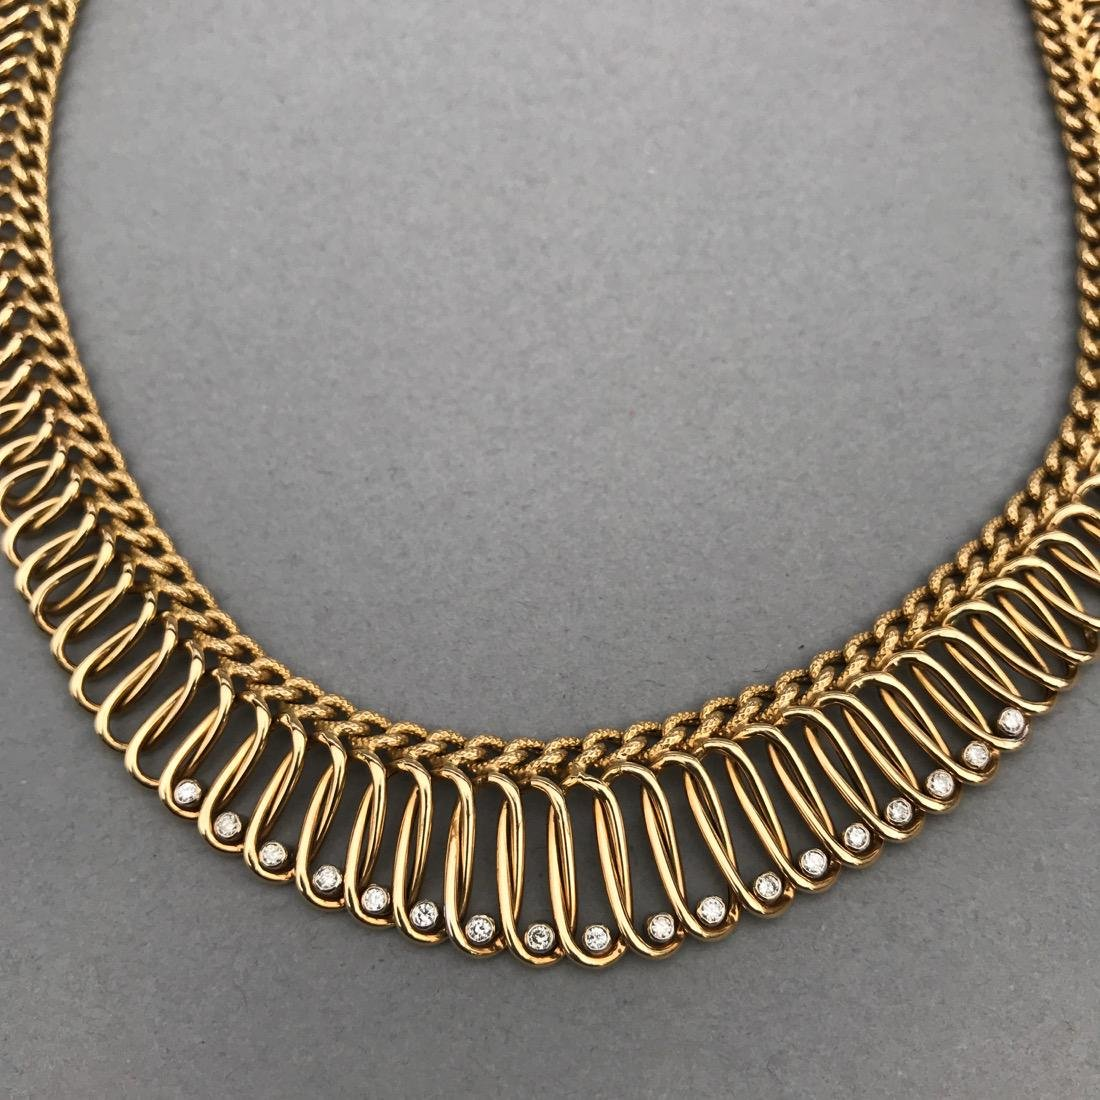 14K Gold Necklace with 18 Diamonds - 2